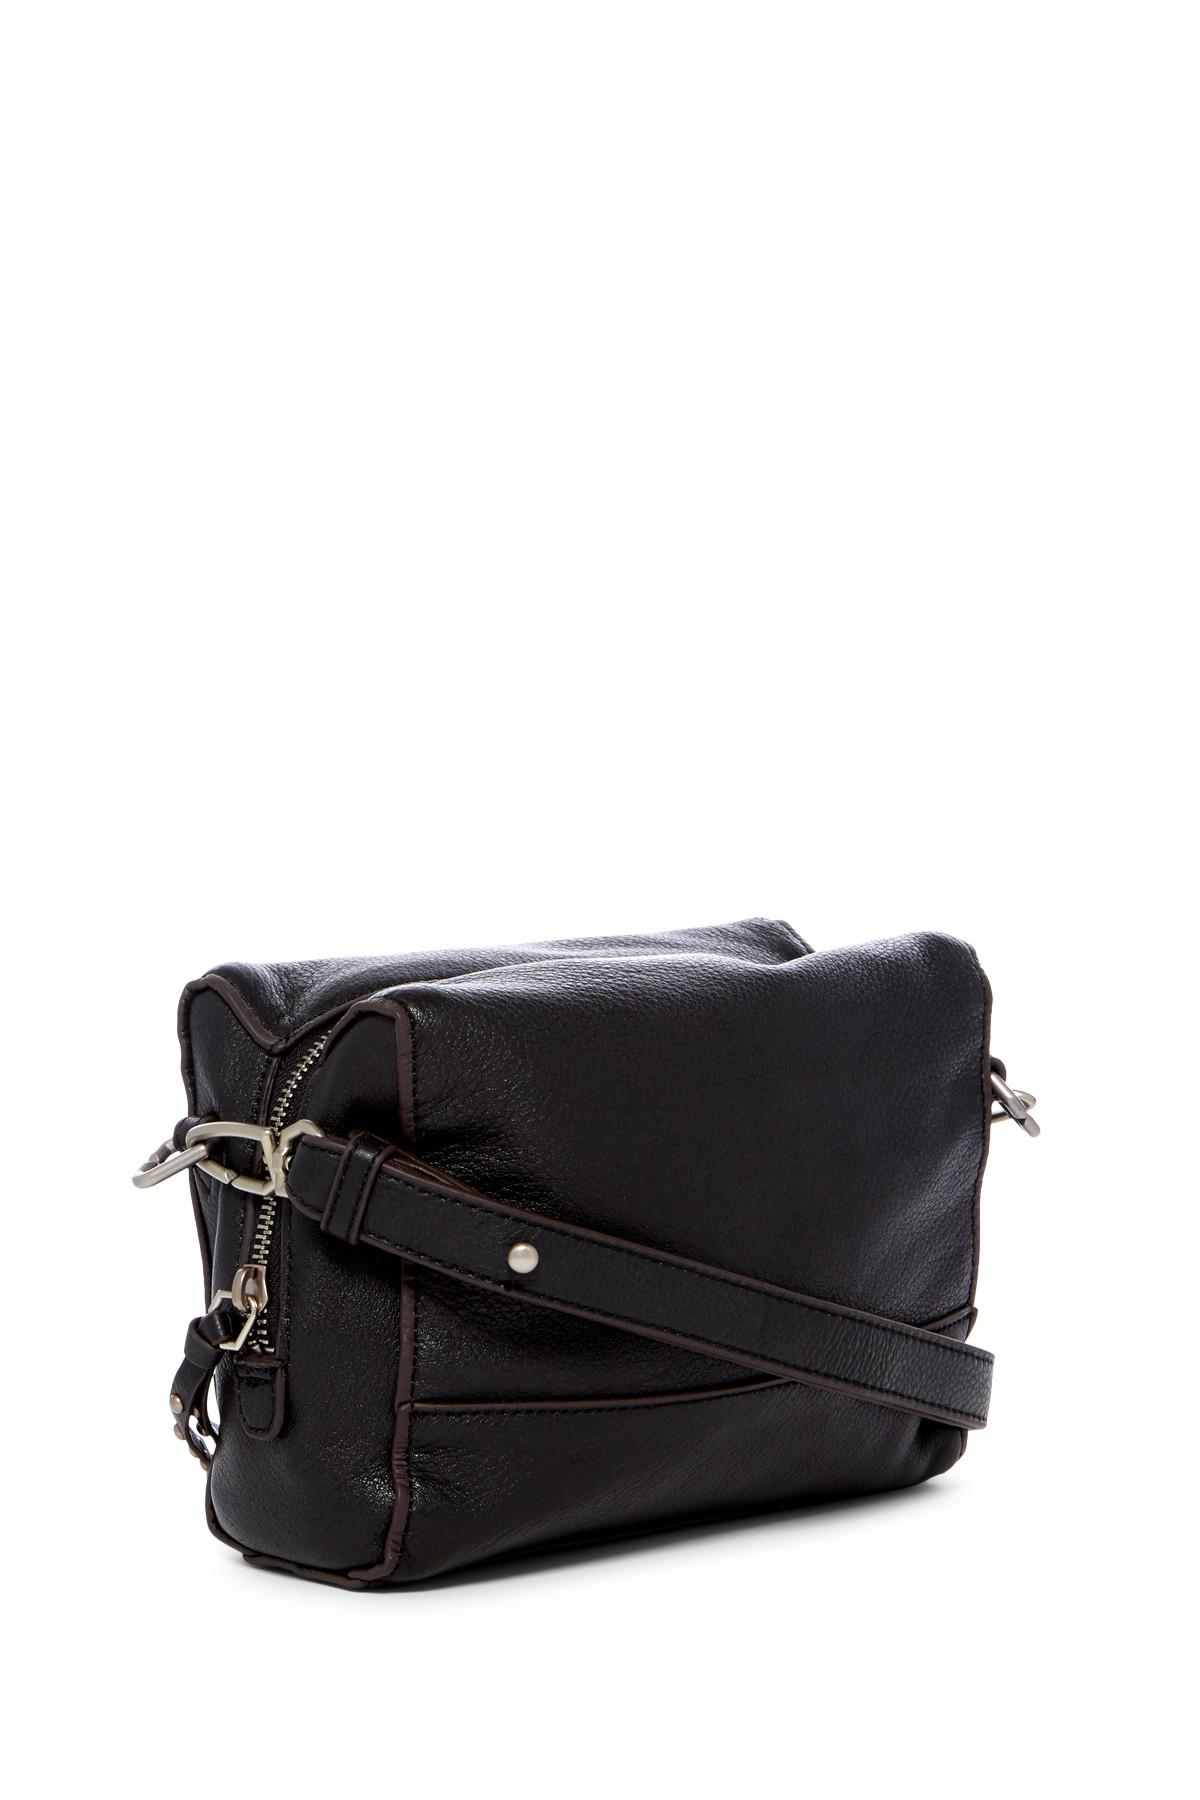 959029fad288 Lyst - Liebeskind Berlin Syracuse Milano Leather Crossbody Bag in Black